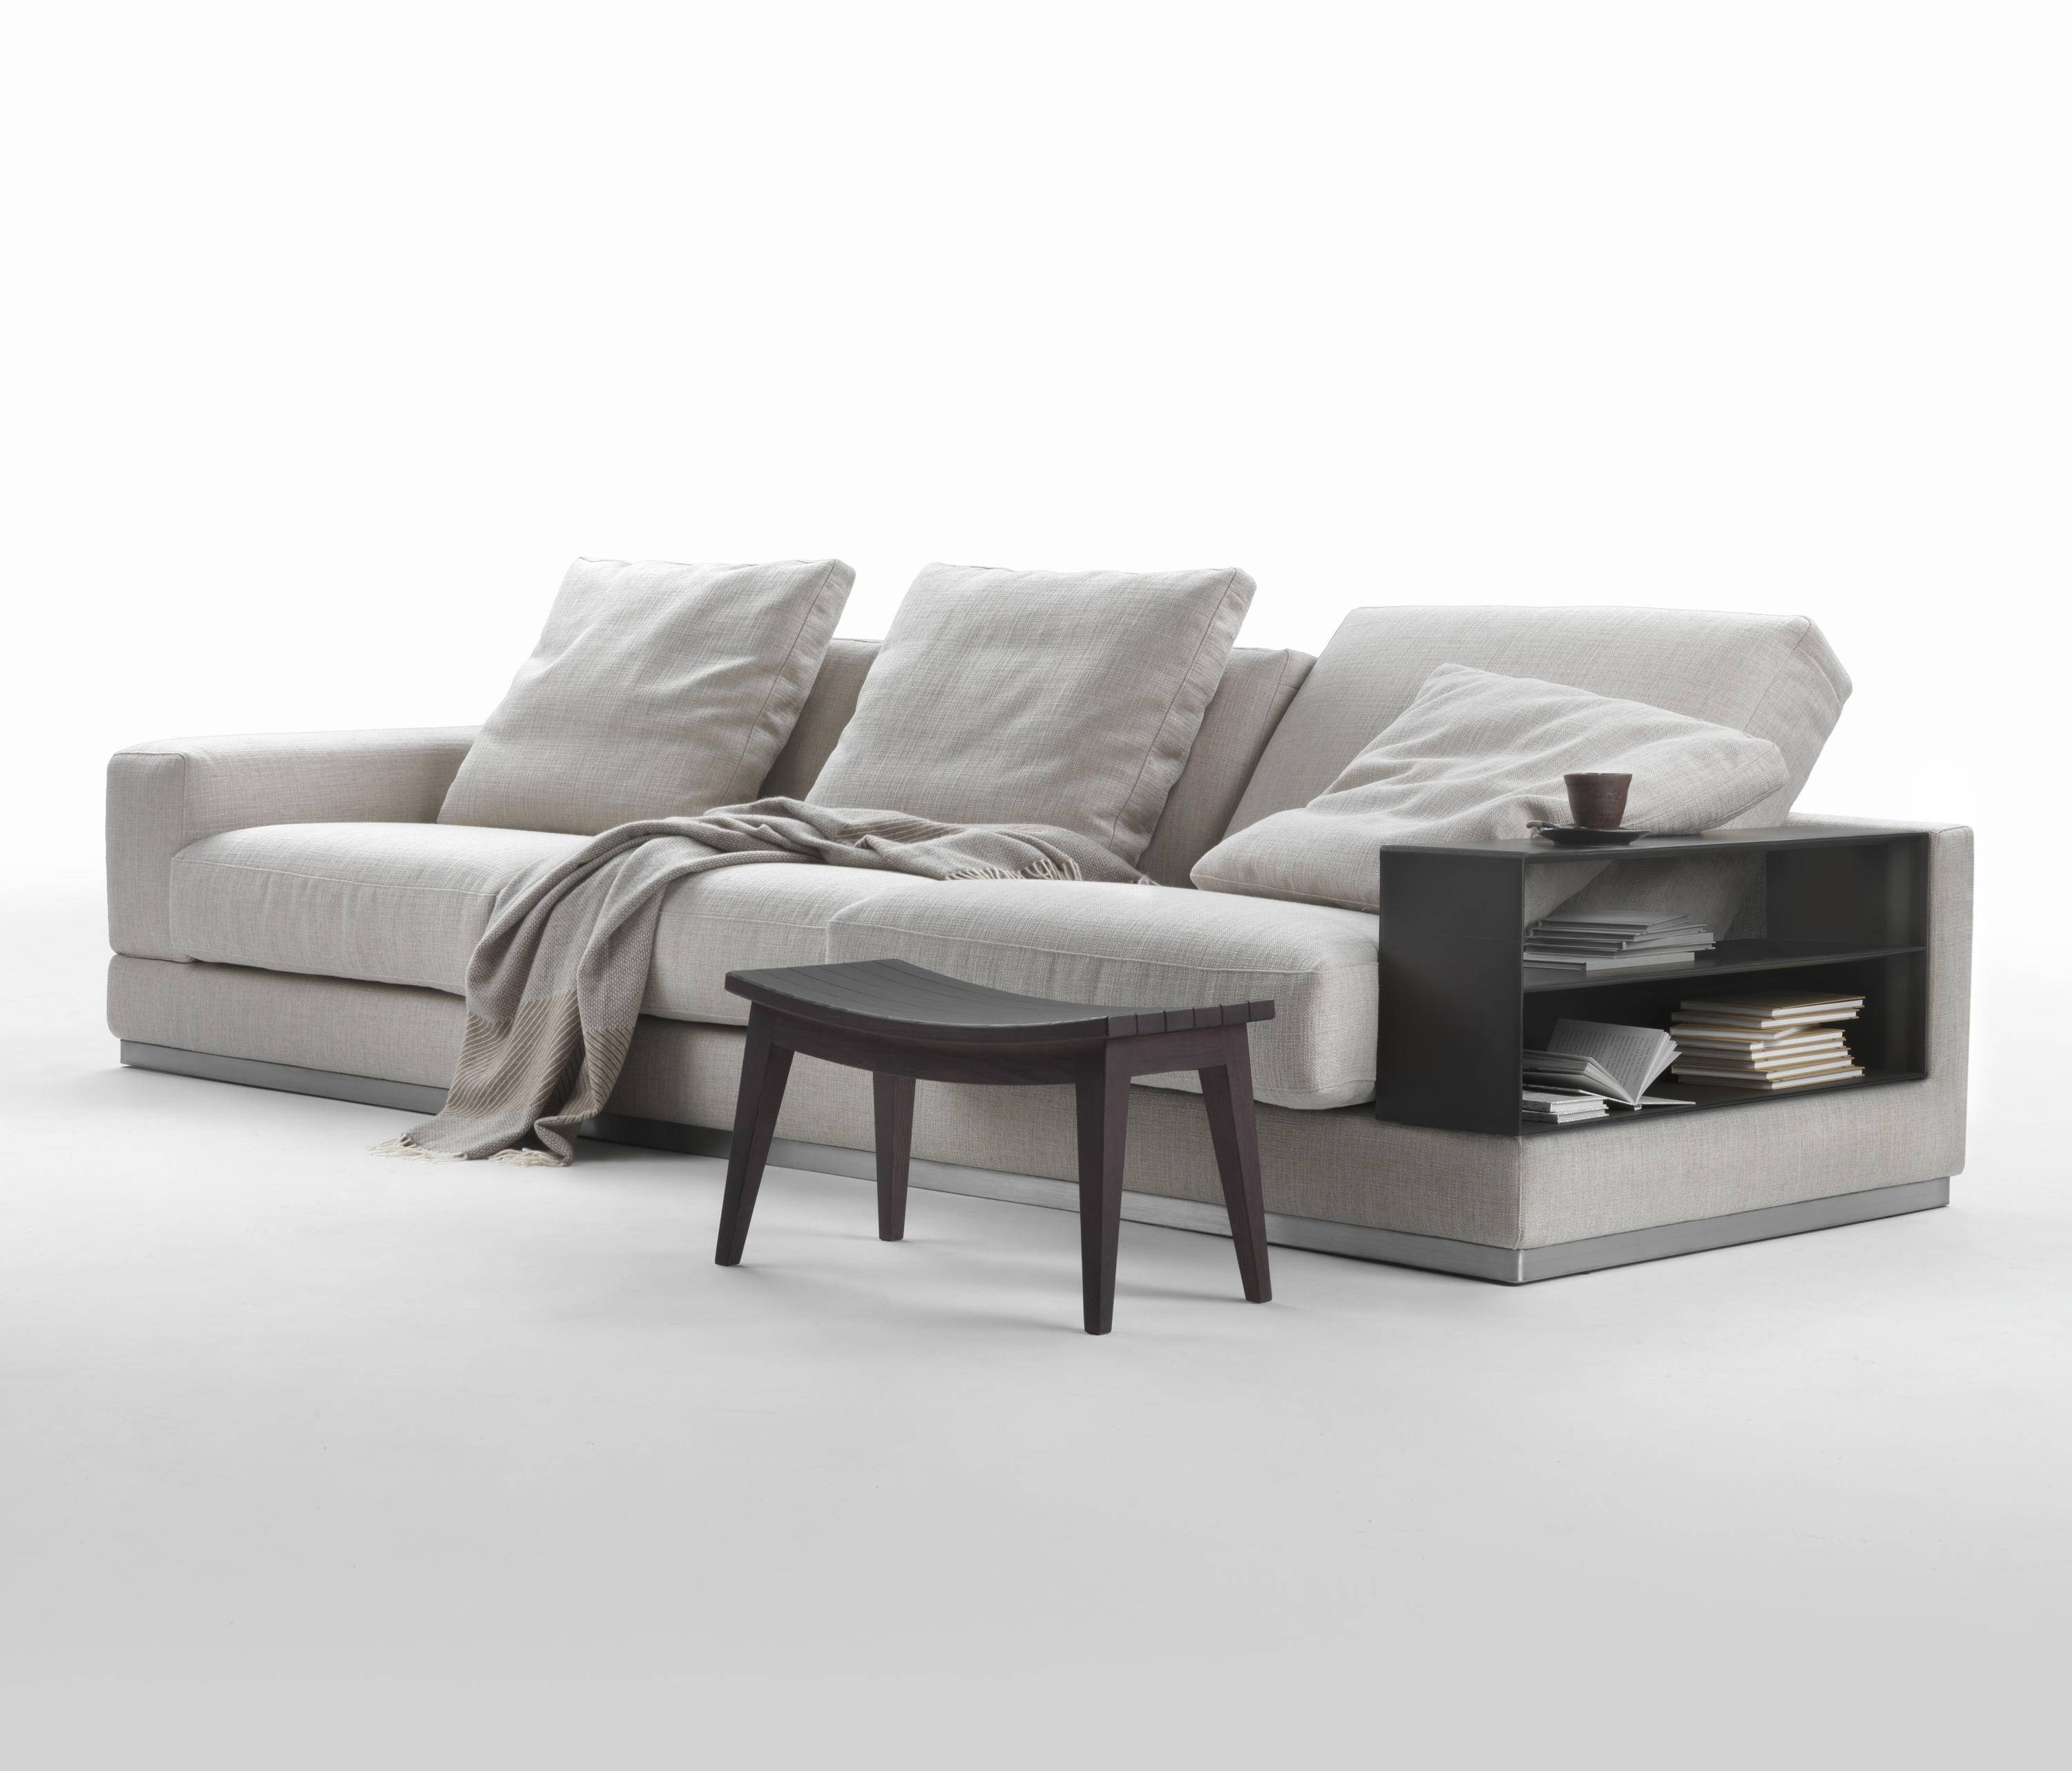 Big Bob - Modular Seating Systems From Flexform | Architonic regarding Flexform Sofas (Image 1 of 25)